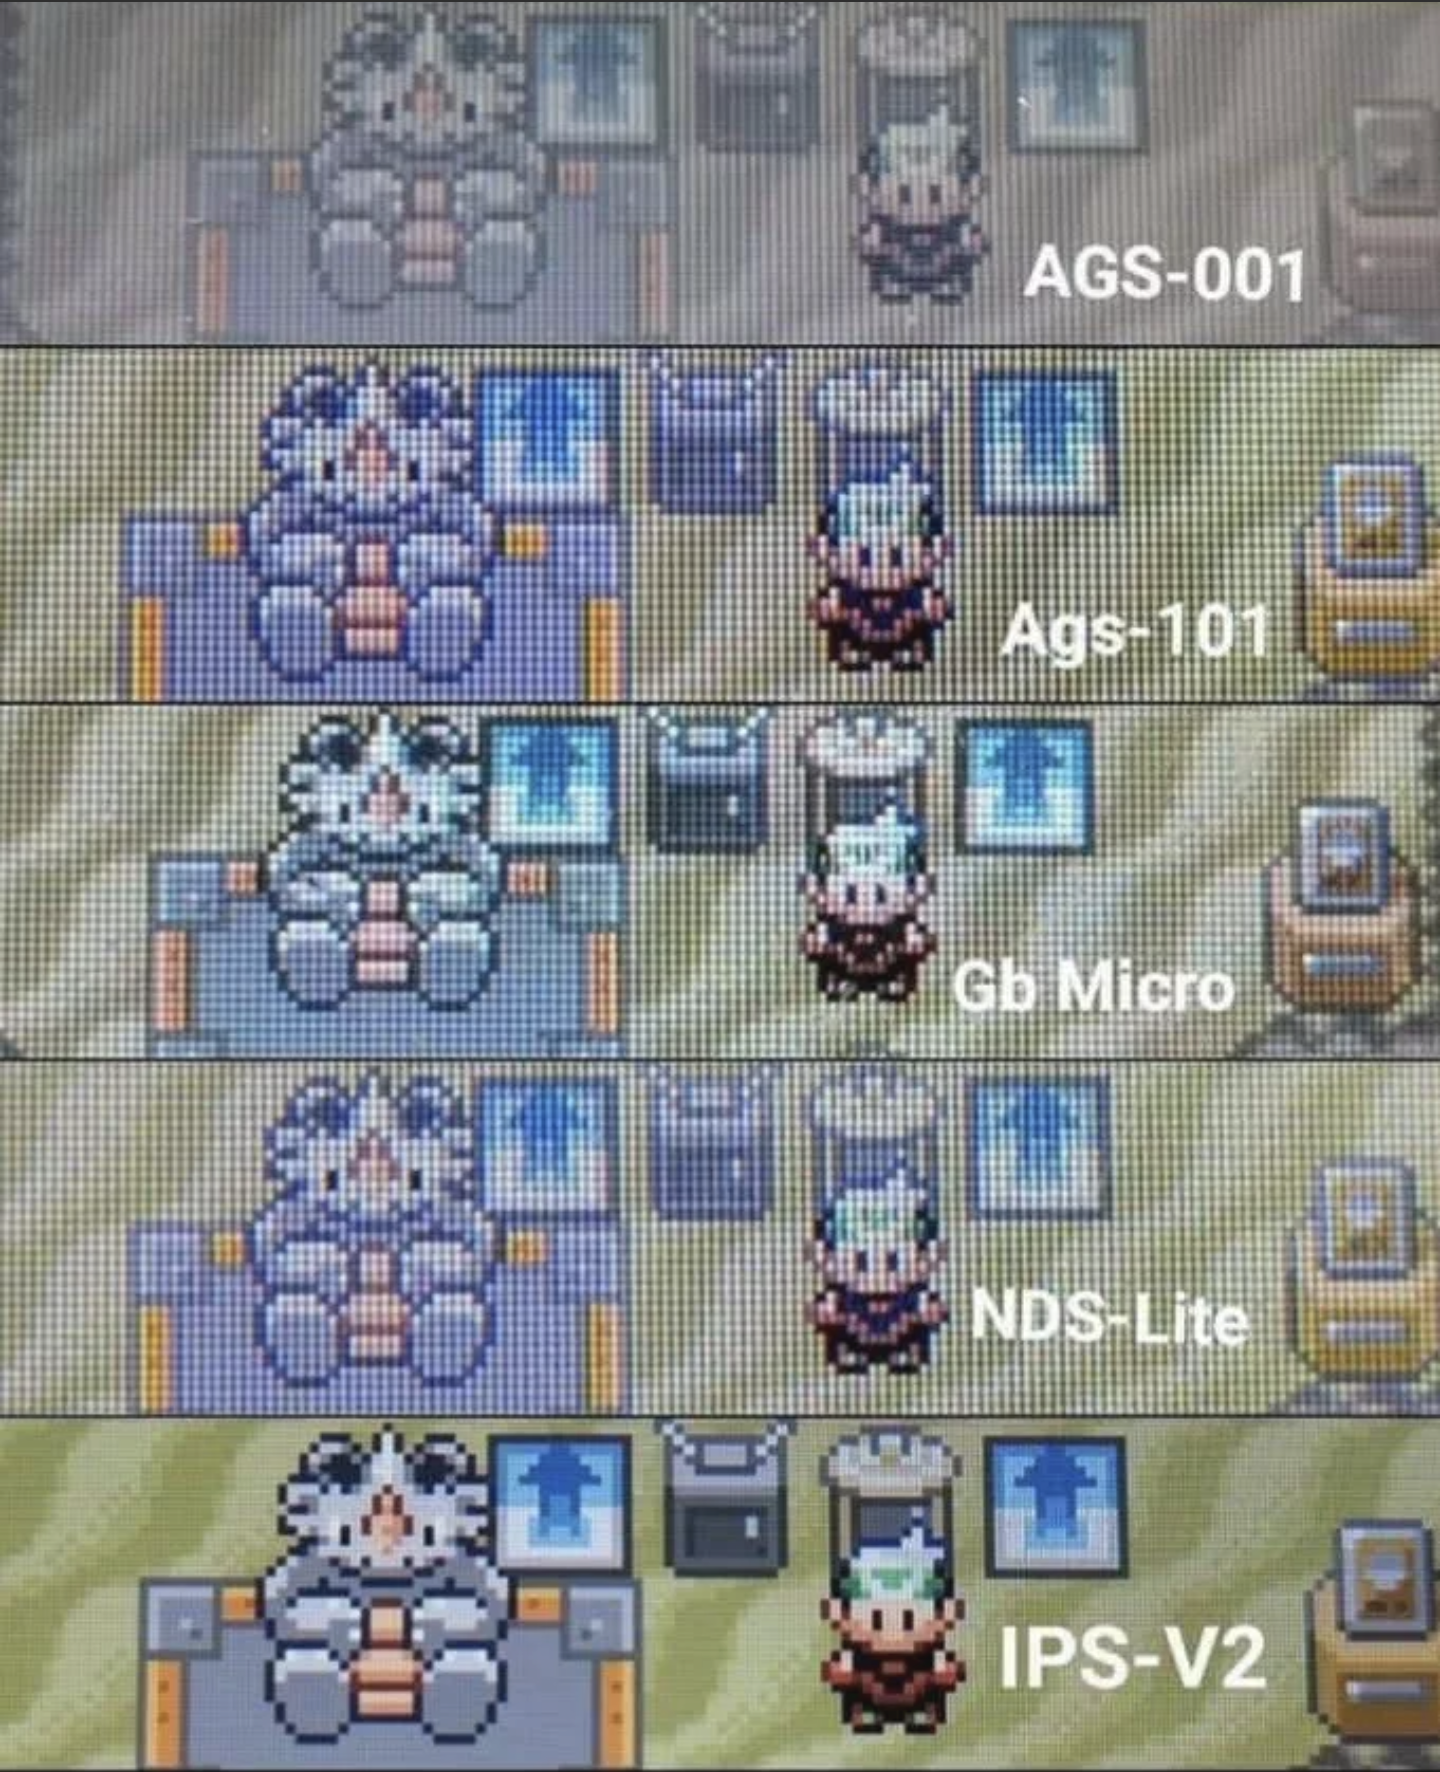 comparing AGS-001 with IPS-V2